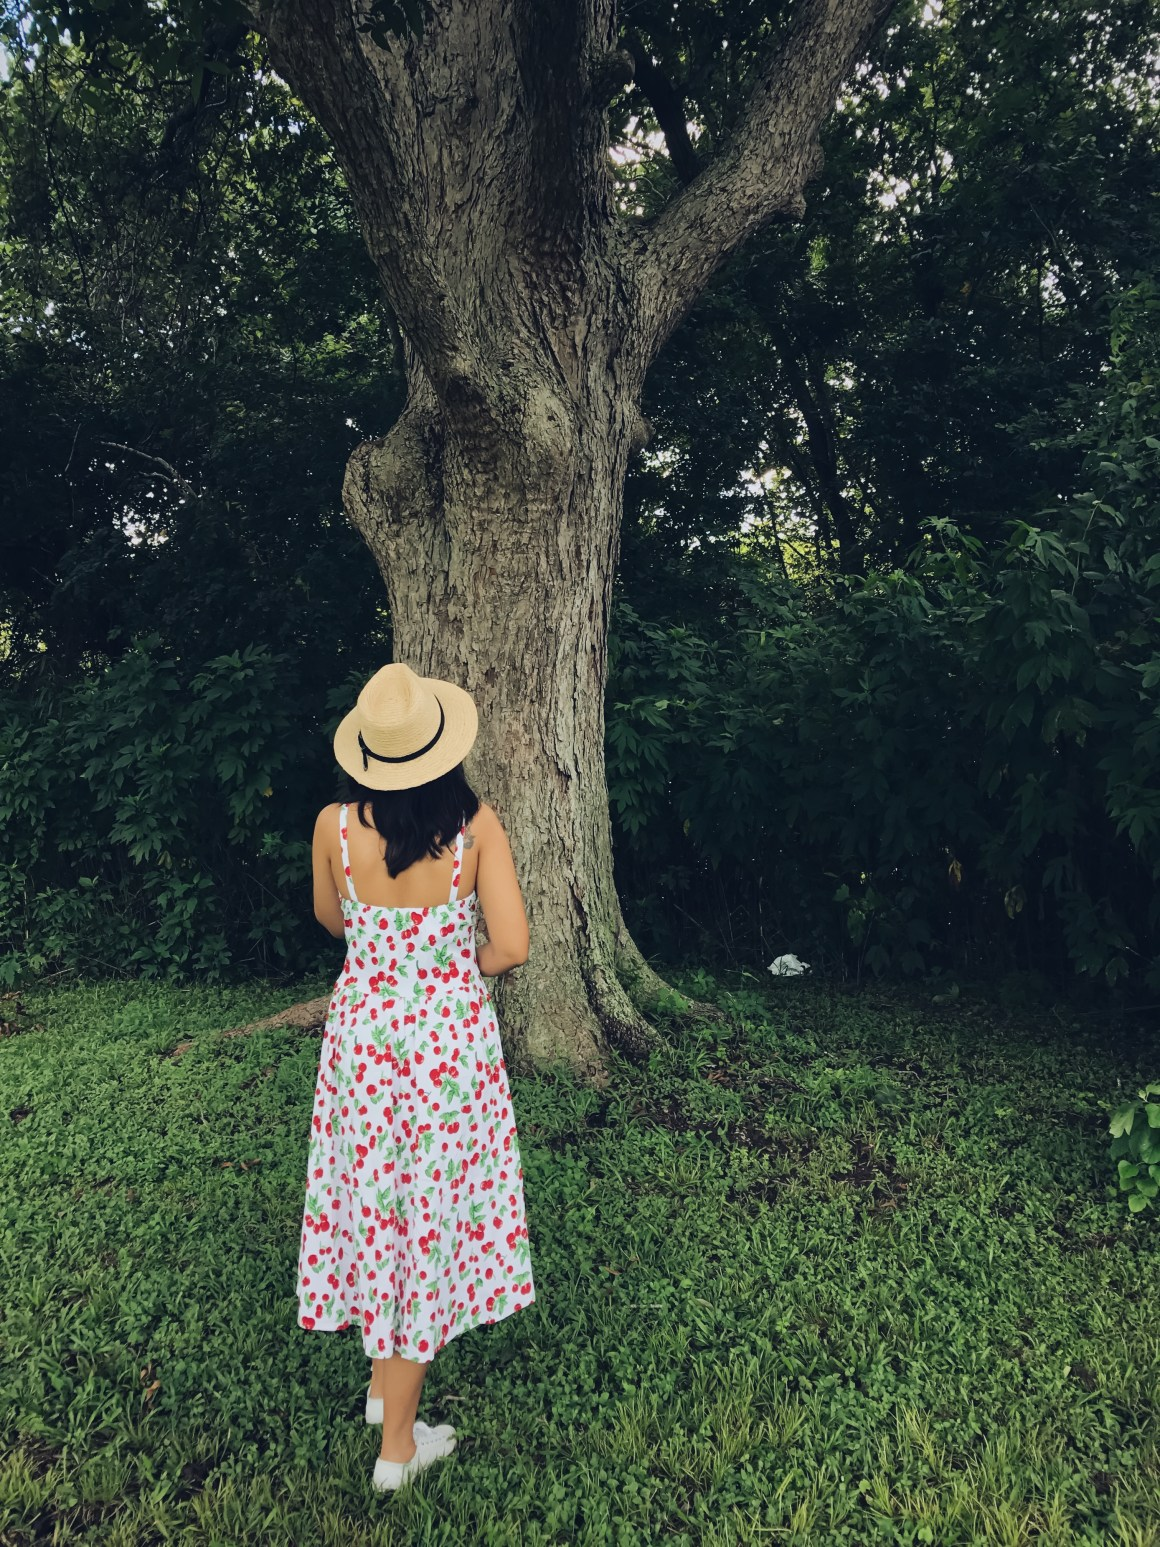 Cherry Print Dress, ASOS hat, KEds white sneakers